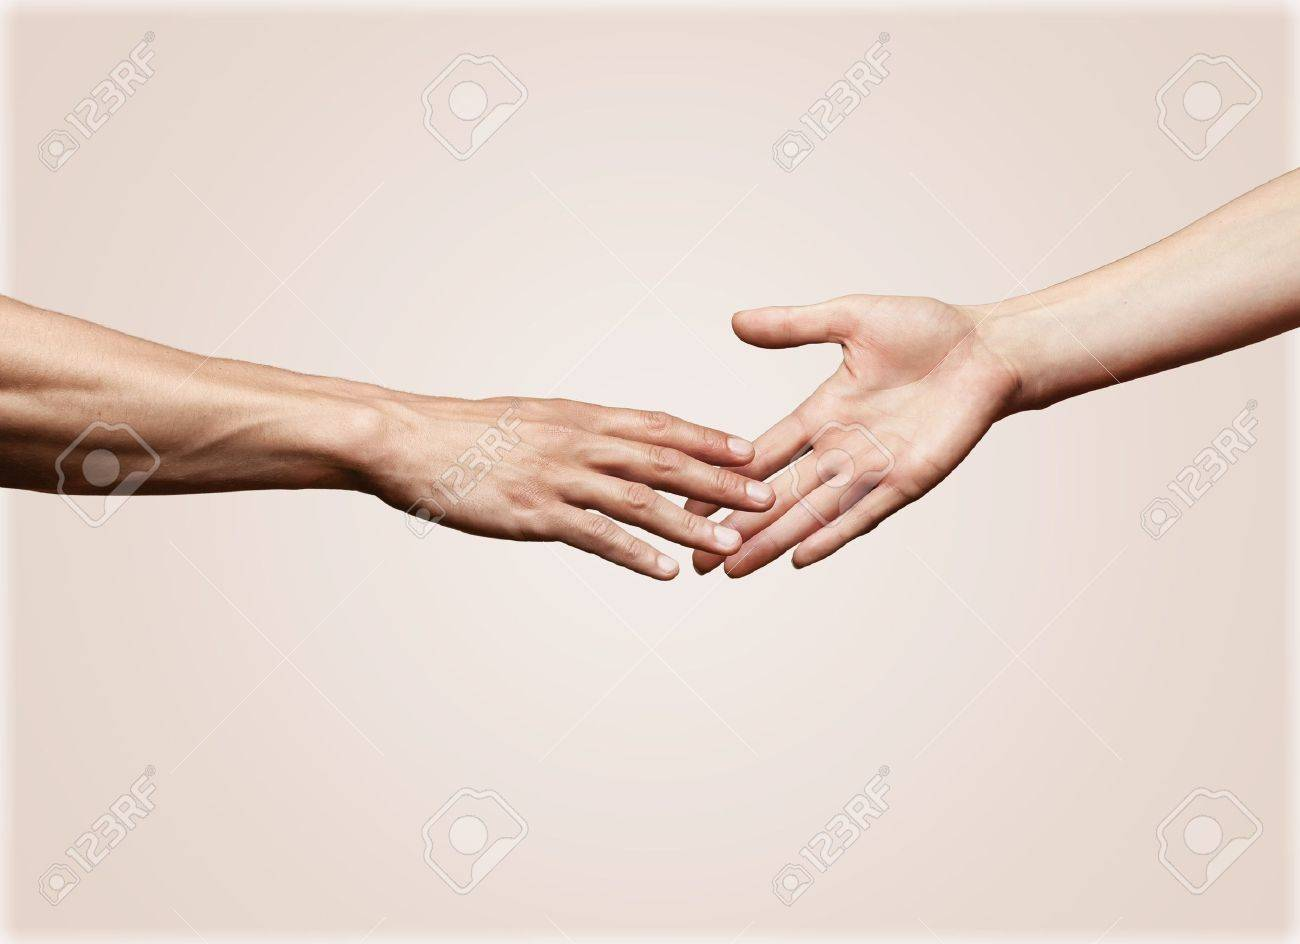 https://previews.123rf.com/images/olegdudko/olegdudko1509/olegdudko150904206/45436162-A-Helping-Hand--Stock-Photo.jpg